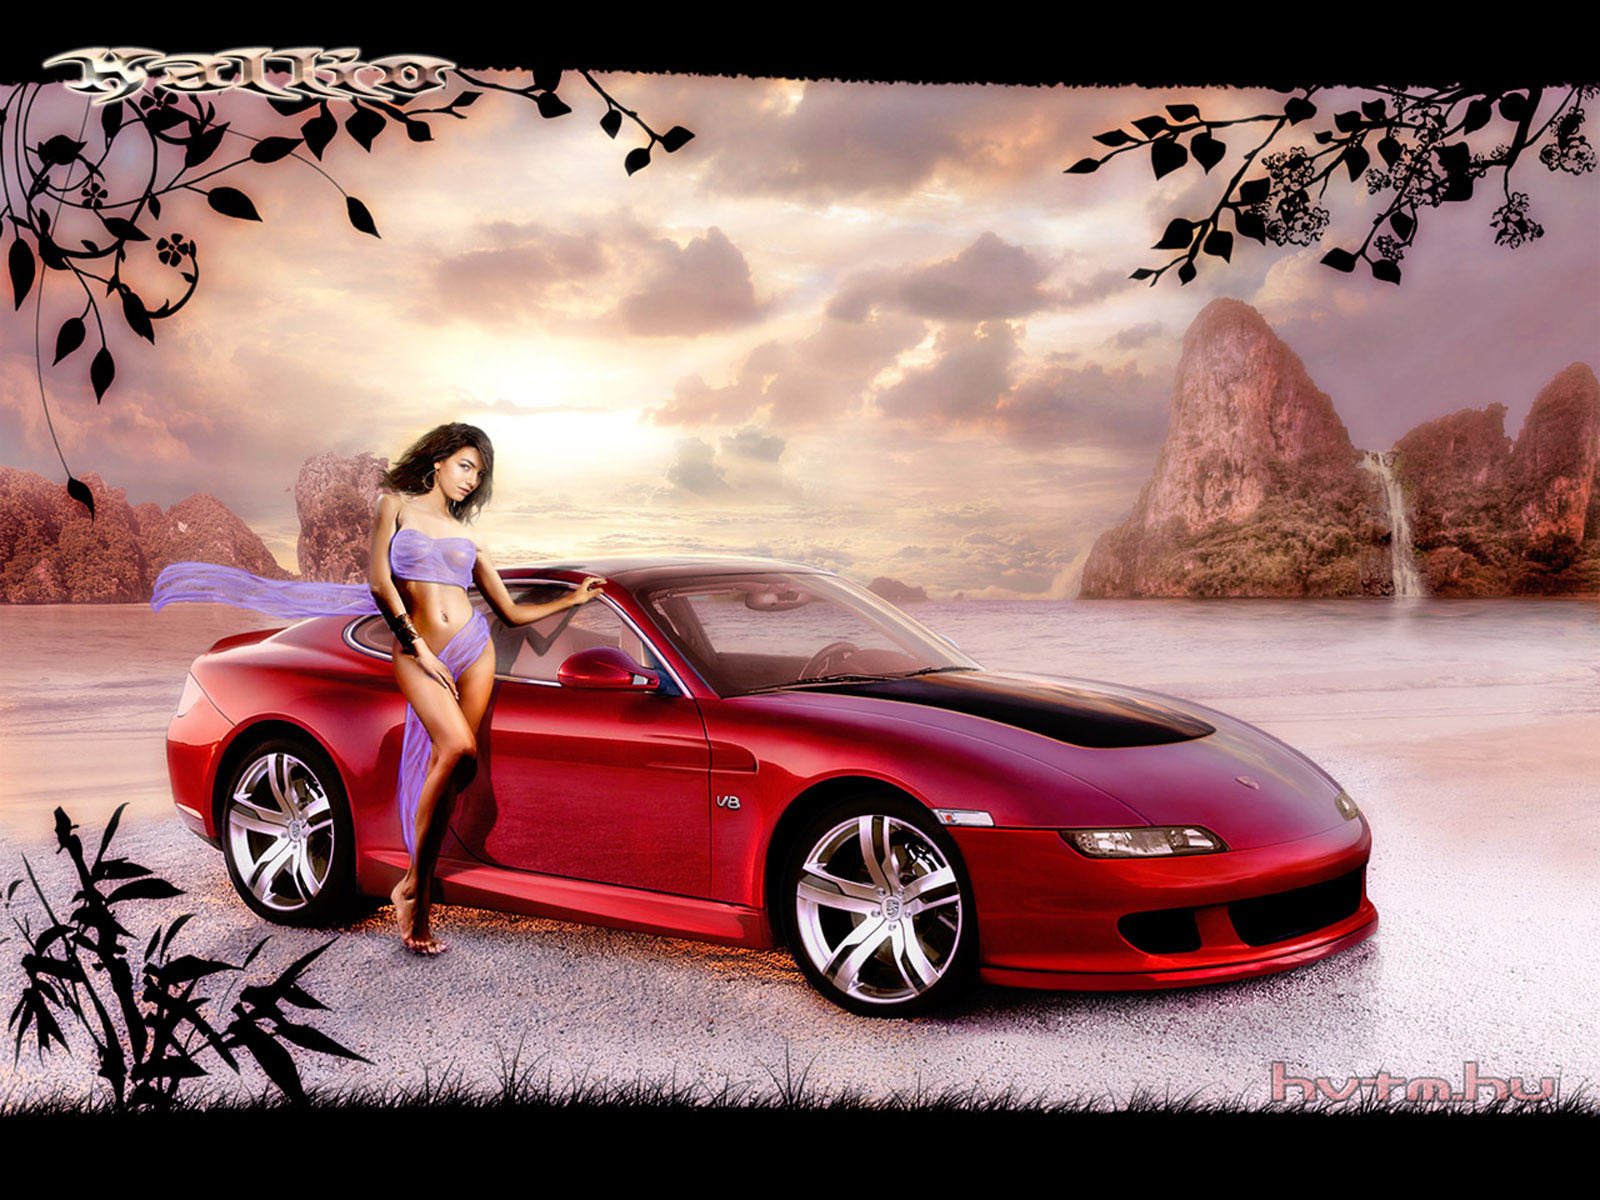 [44+] Girl and Car Wallpaper on WallpaperSafari